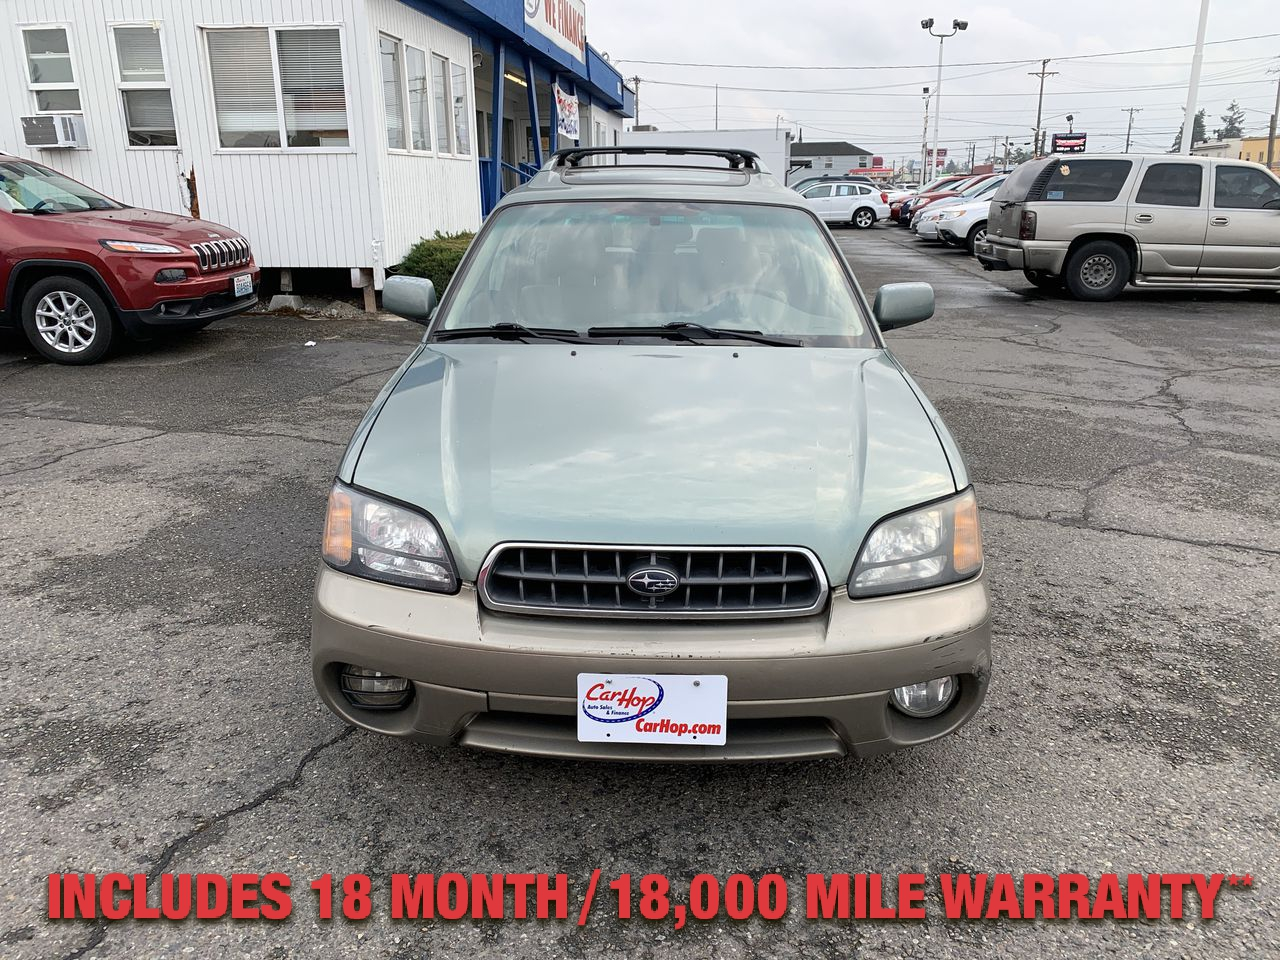 Pre-Owned 2004 SUBARU OUTBACK Limited Wa